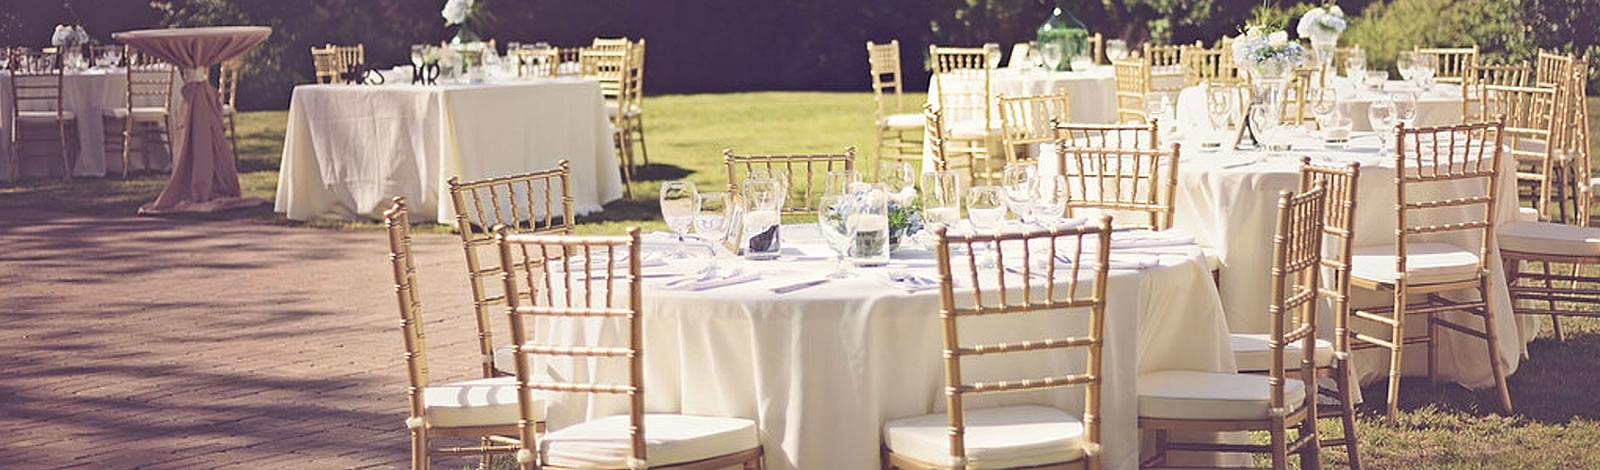 noble-rentals-chiavari-chairs-mahogany-gold